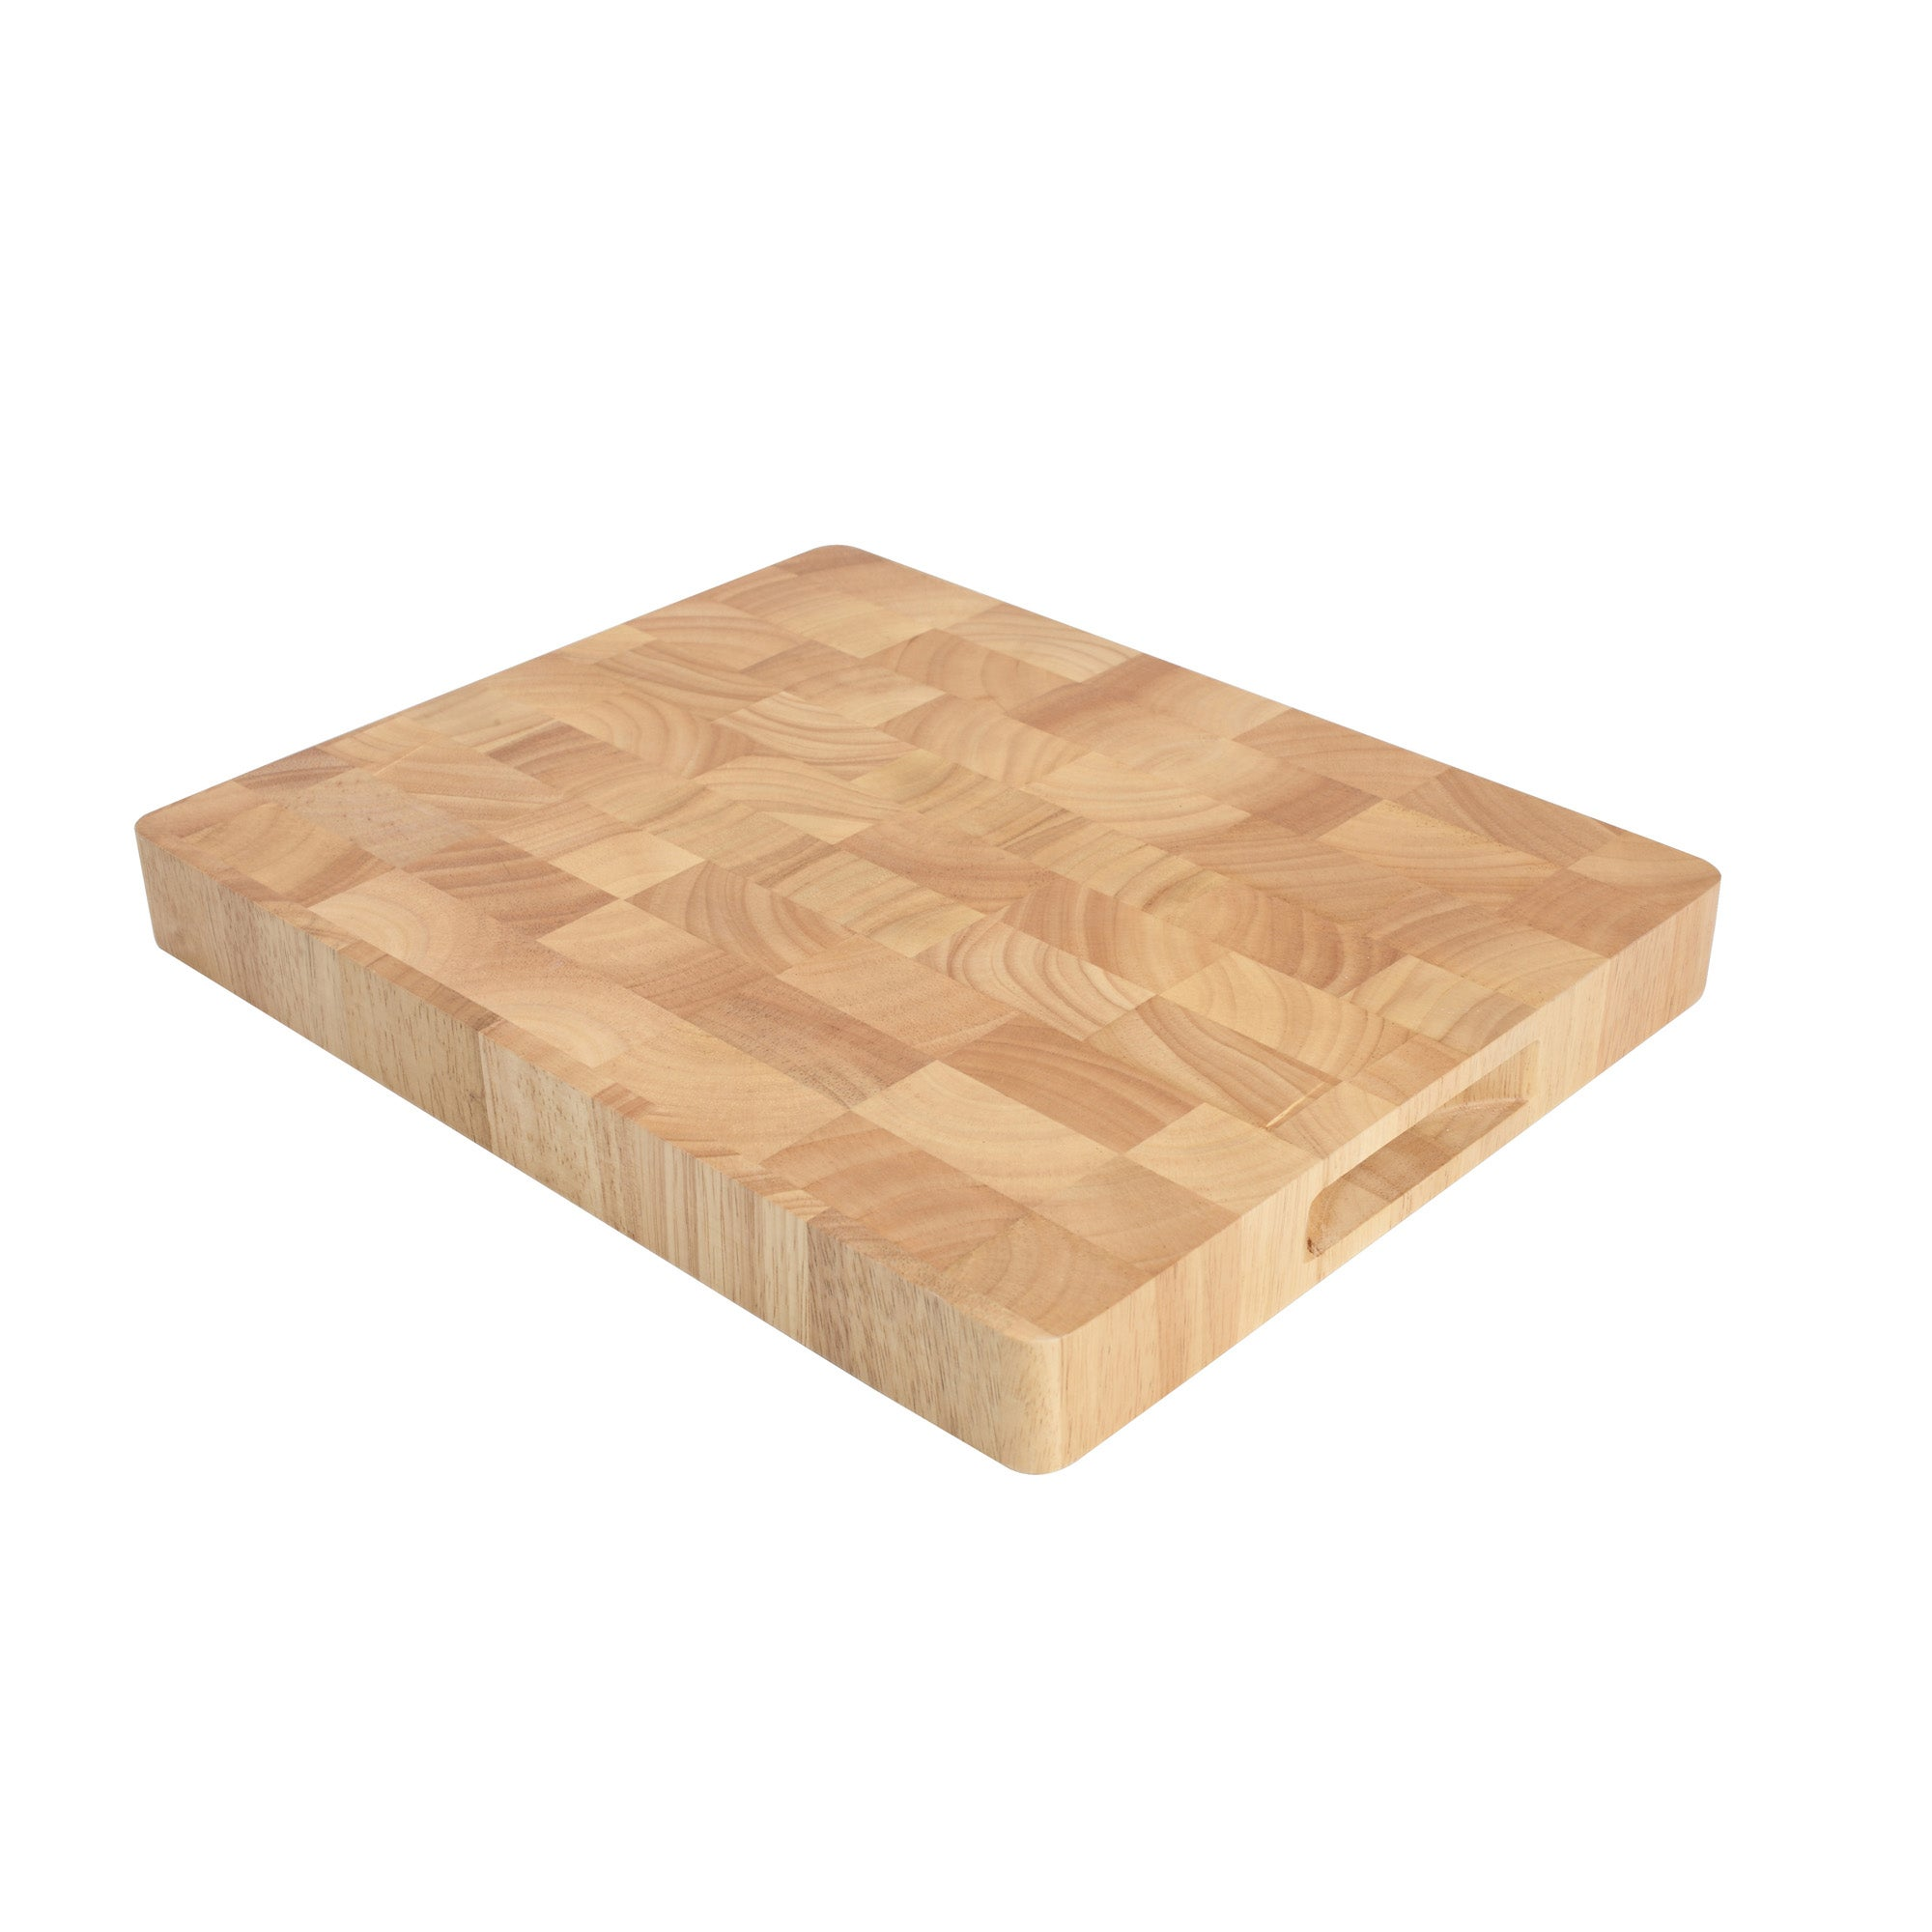 T & G Hevea Large End Grain Chopping Board